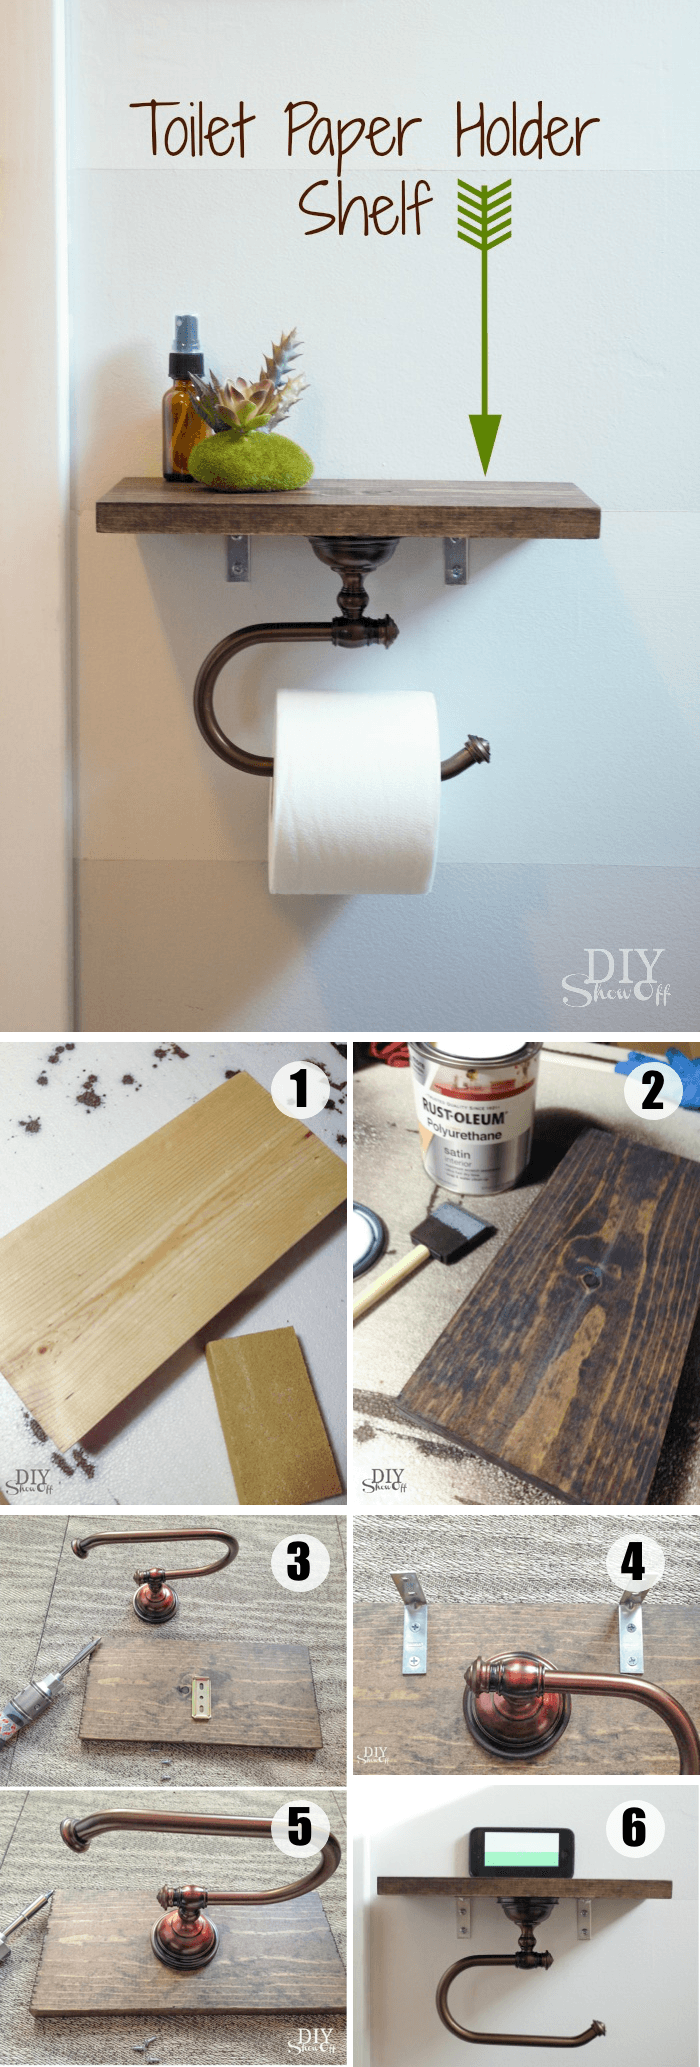 Totally Unusual DIY Toilet Paper Holders Paper Holders - Bathroom towel bars and toilet paper holders for bathroom decor ideas